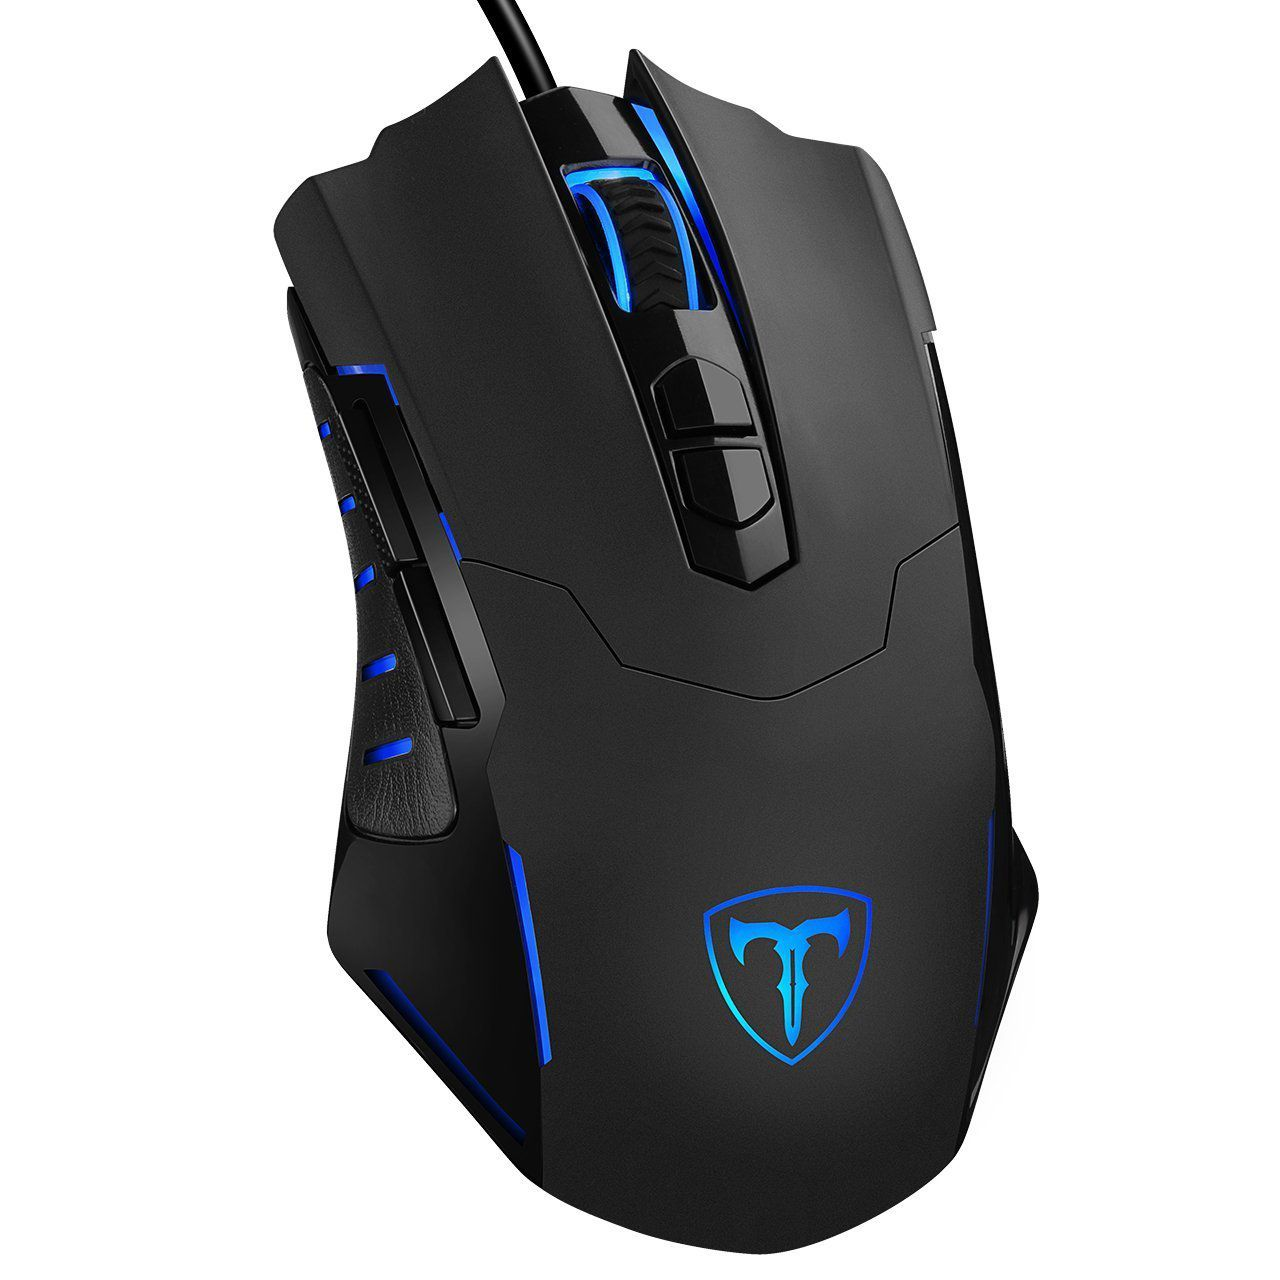 What Is A Mouse Computer Definition Optical Diagram Electronic Get Free Image About Wiring Pictek Gaming Black With Electric Blue Light Up Logo And Scroll Wheel